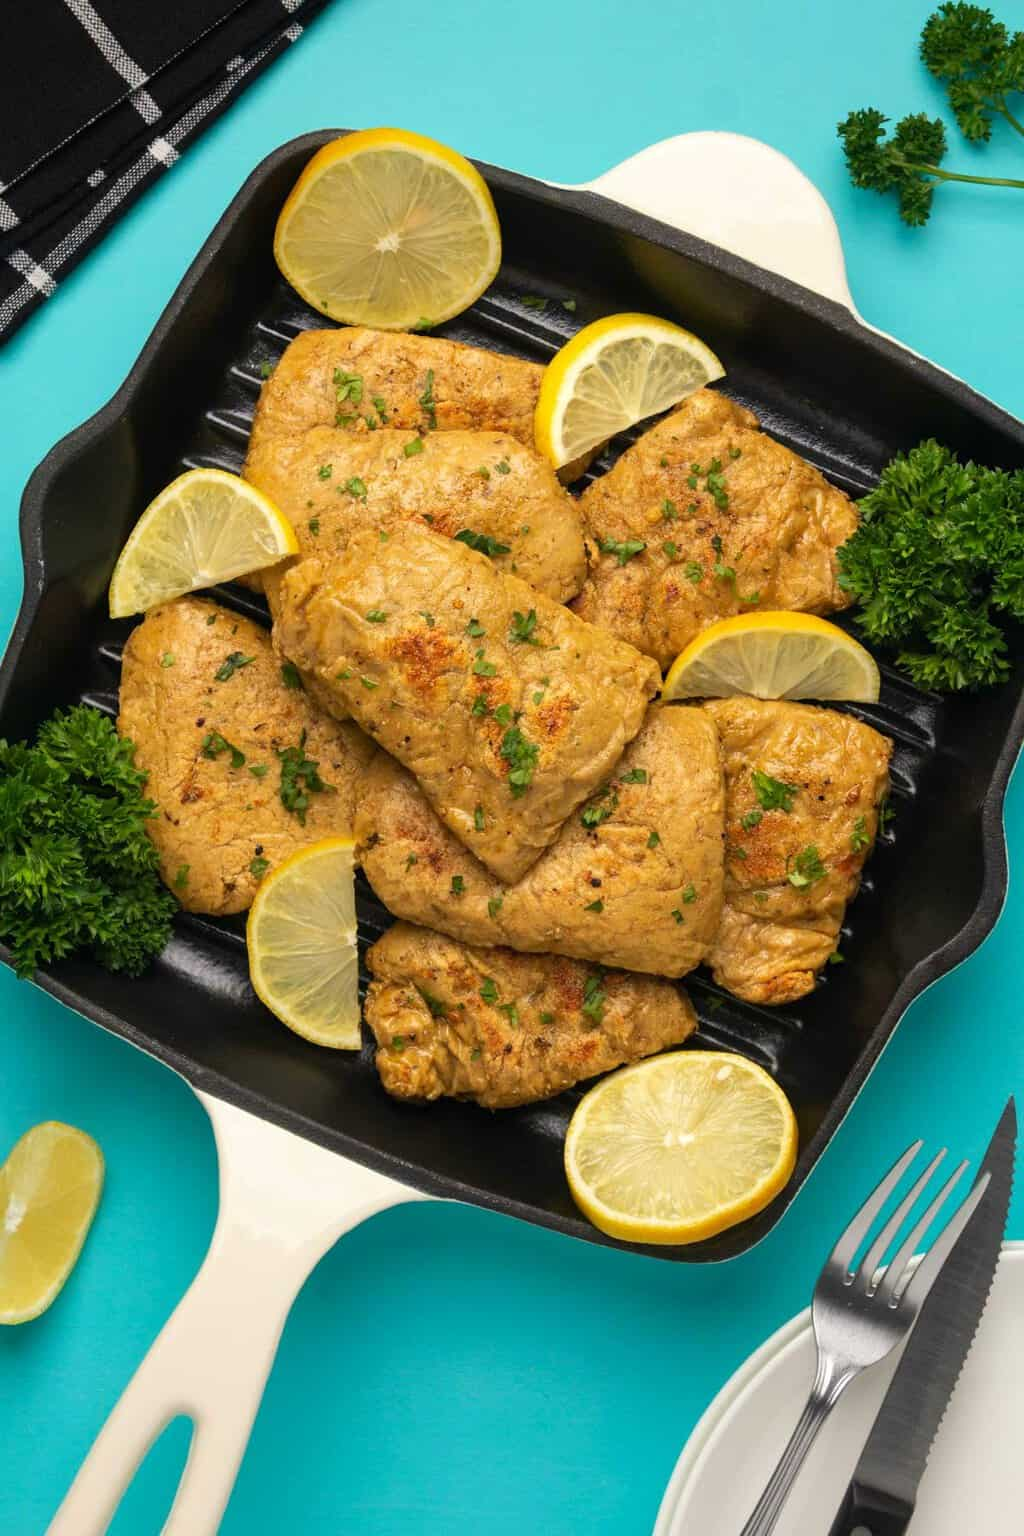 Vegan chicken fillets with fresh parsley and lemon slices in a frying pan.